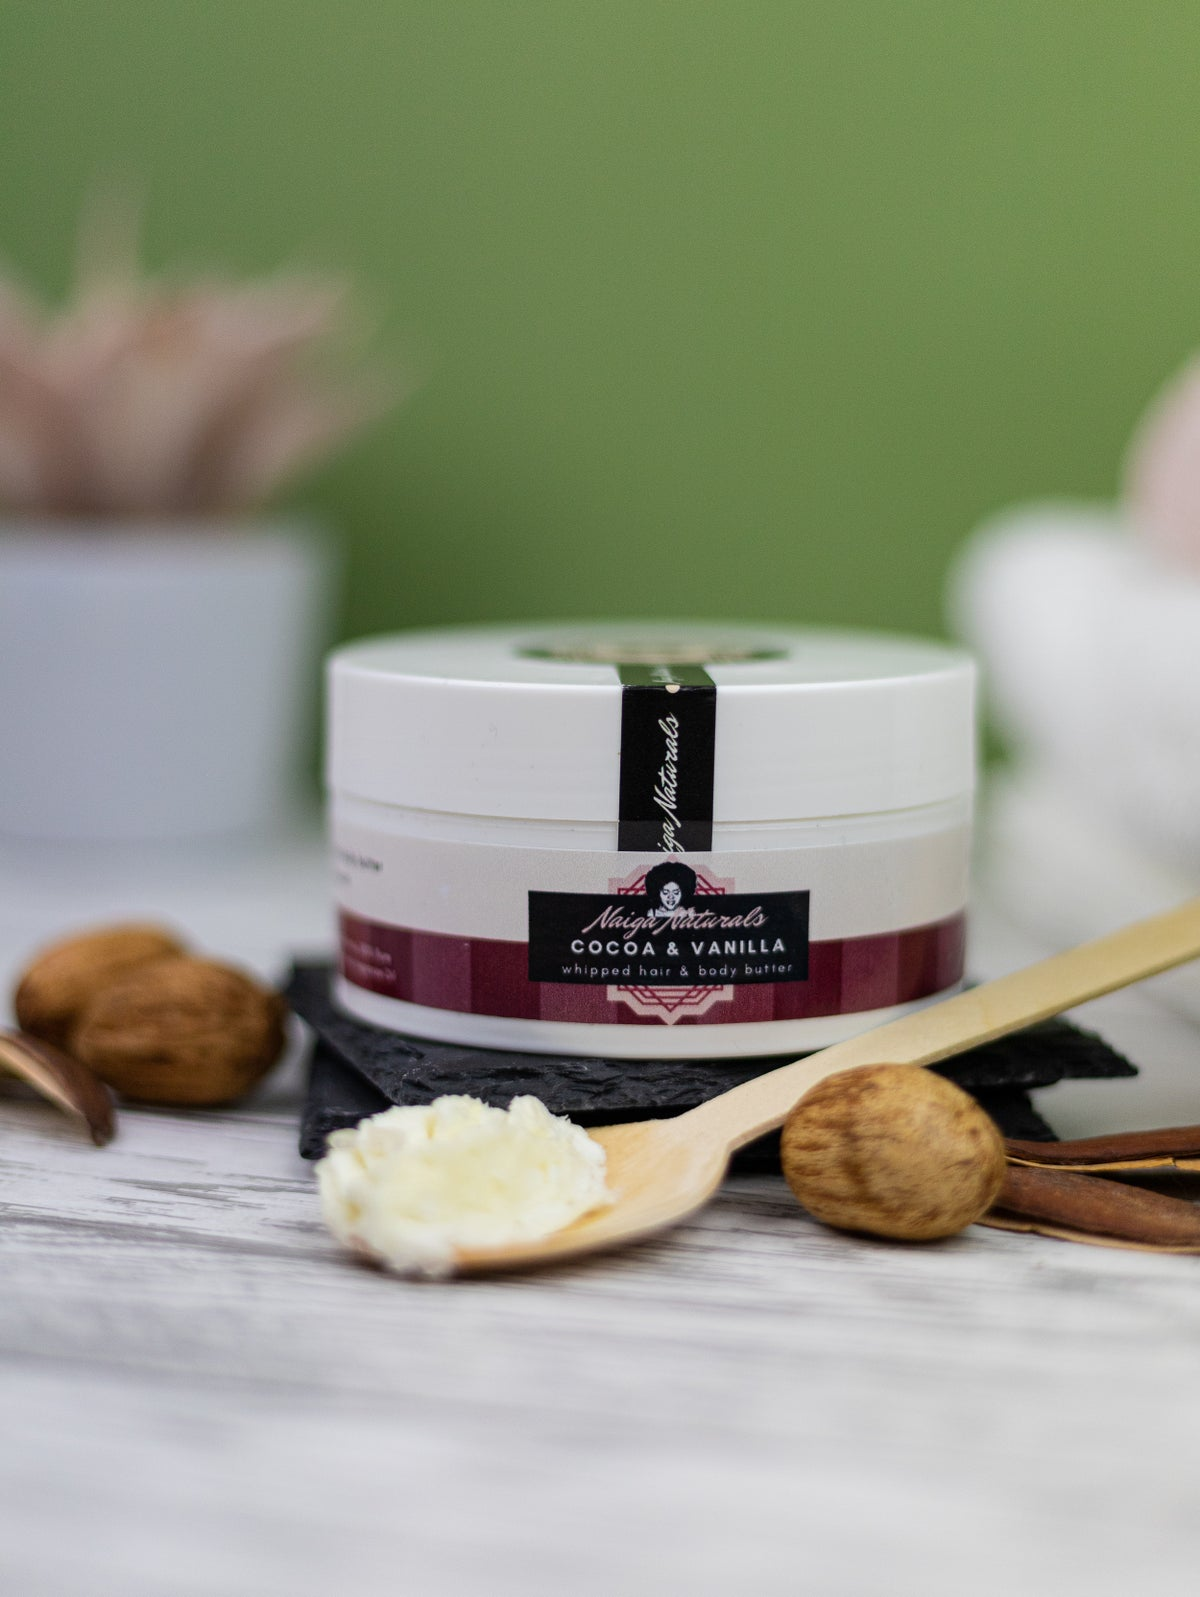 Image of Cocoa & Vanilla Whipped Hair and Body Butter